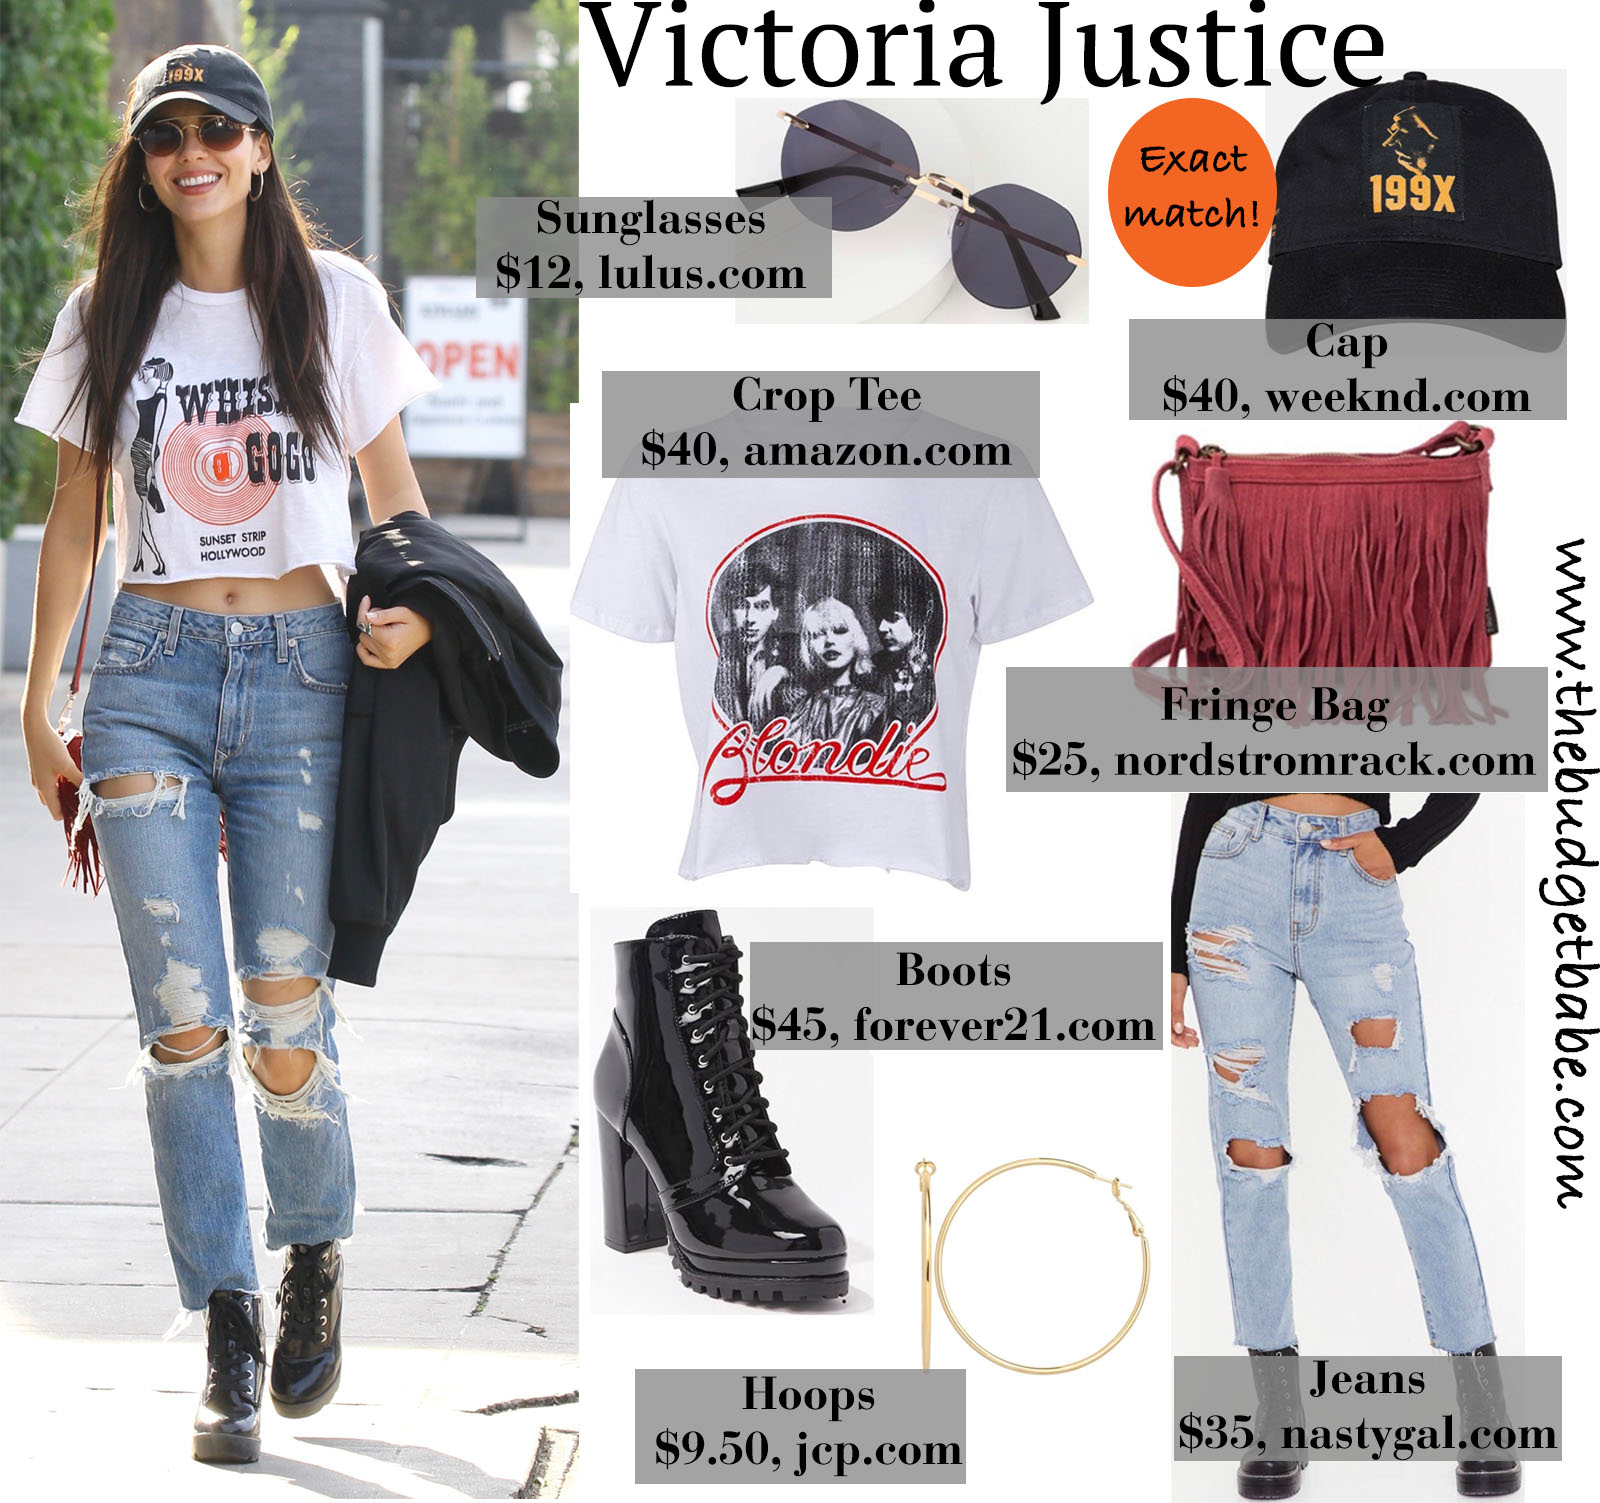 Victoria Justice serves cool street style in classic tee, destroyed jeans, and combat boots!